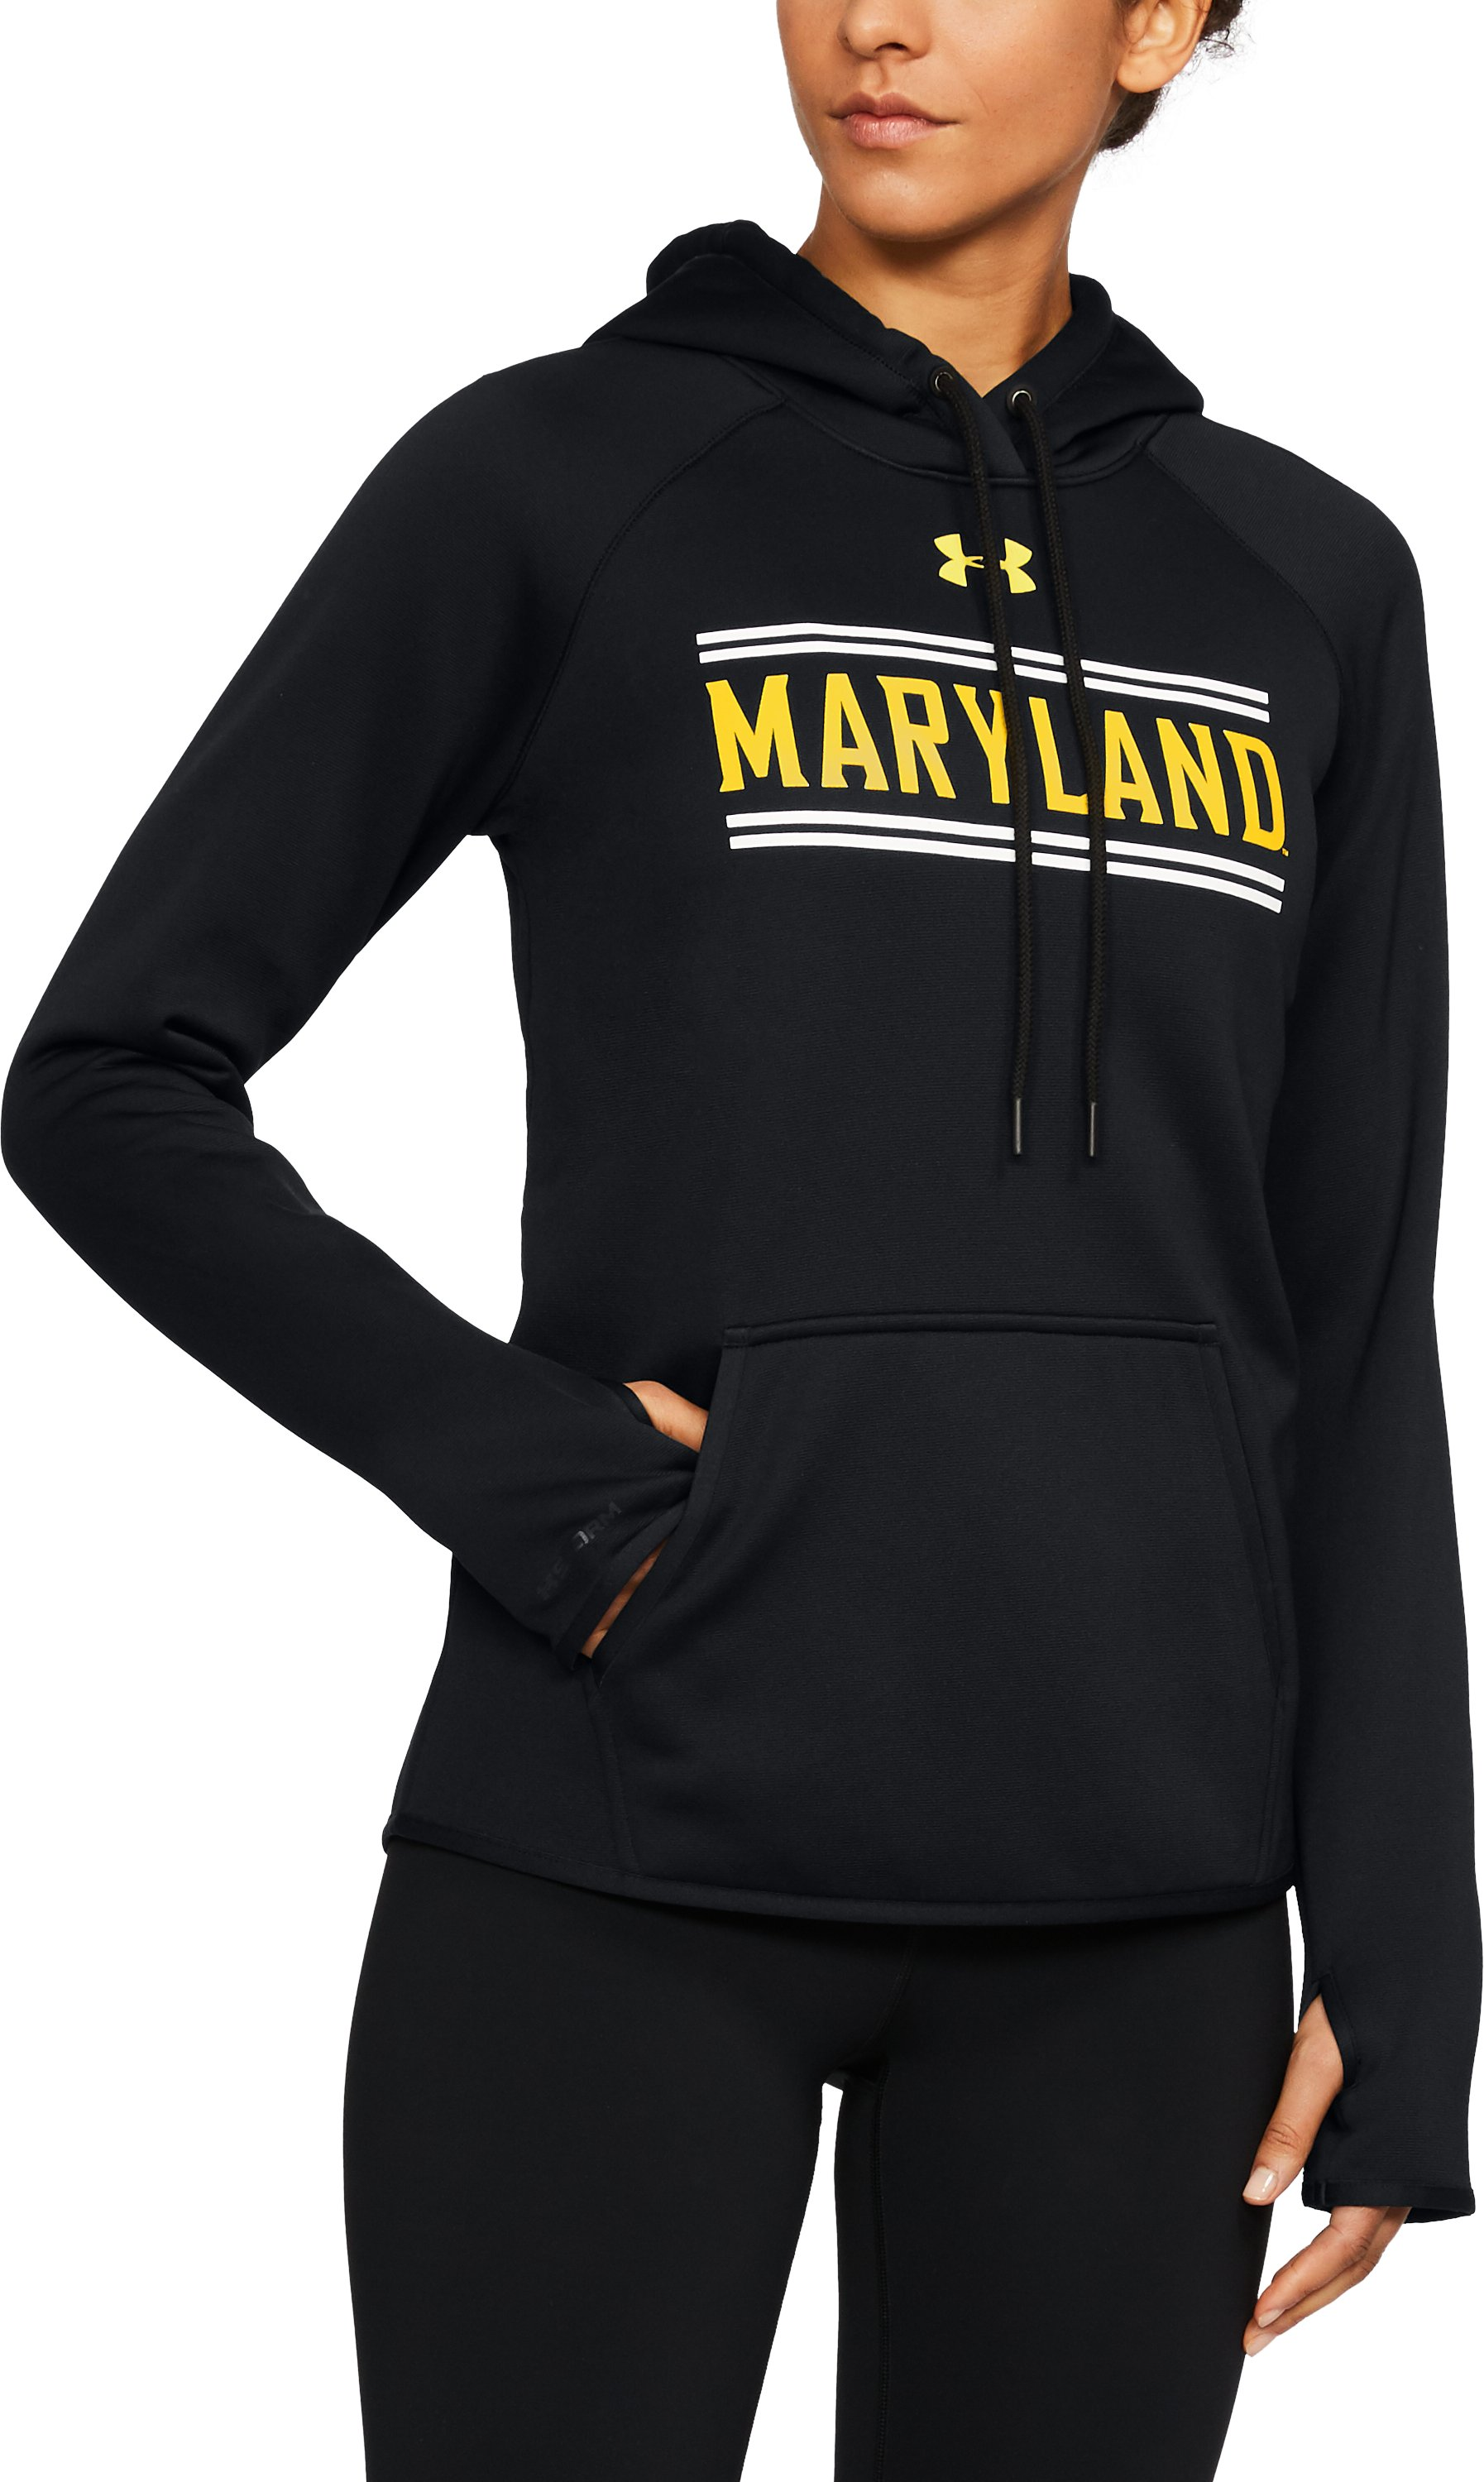 Women's Maryland Armour® Fleece Hoodie, Black , undefined